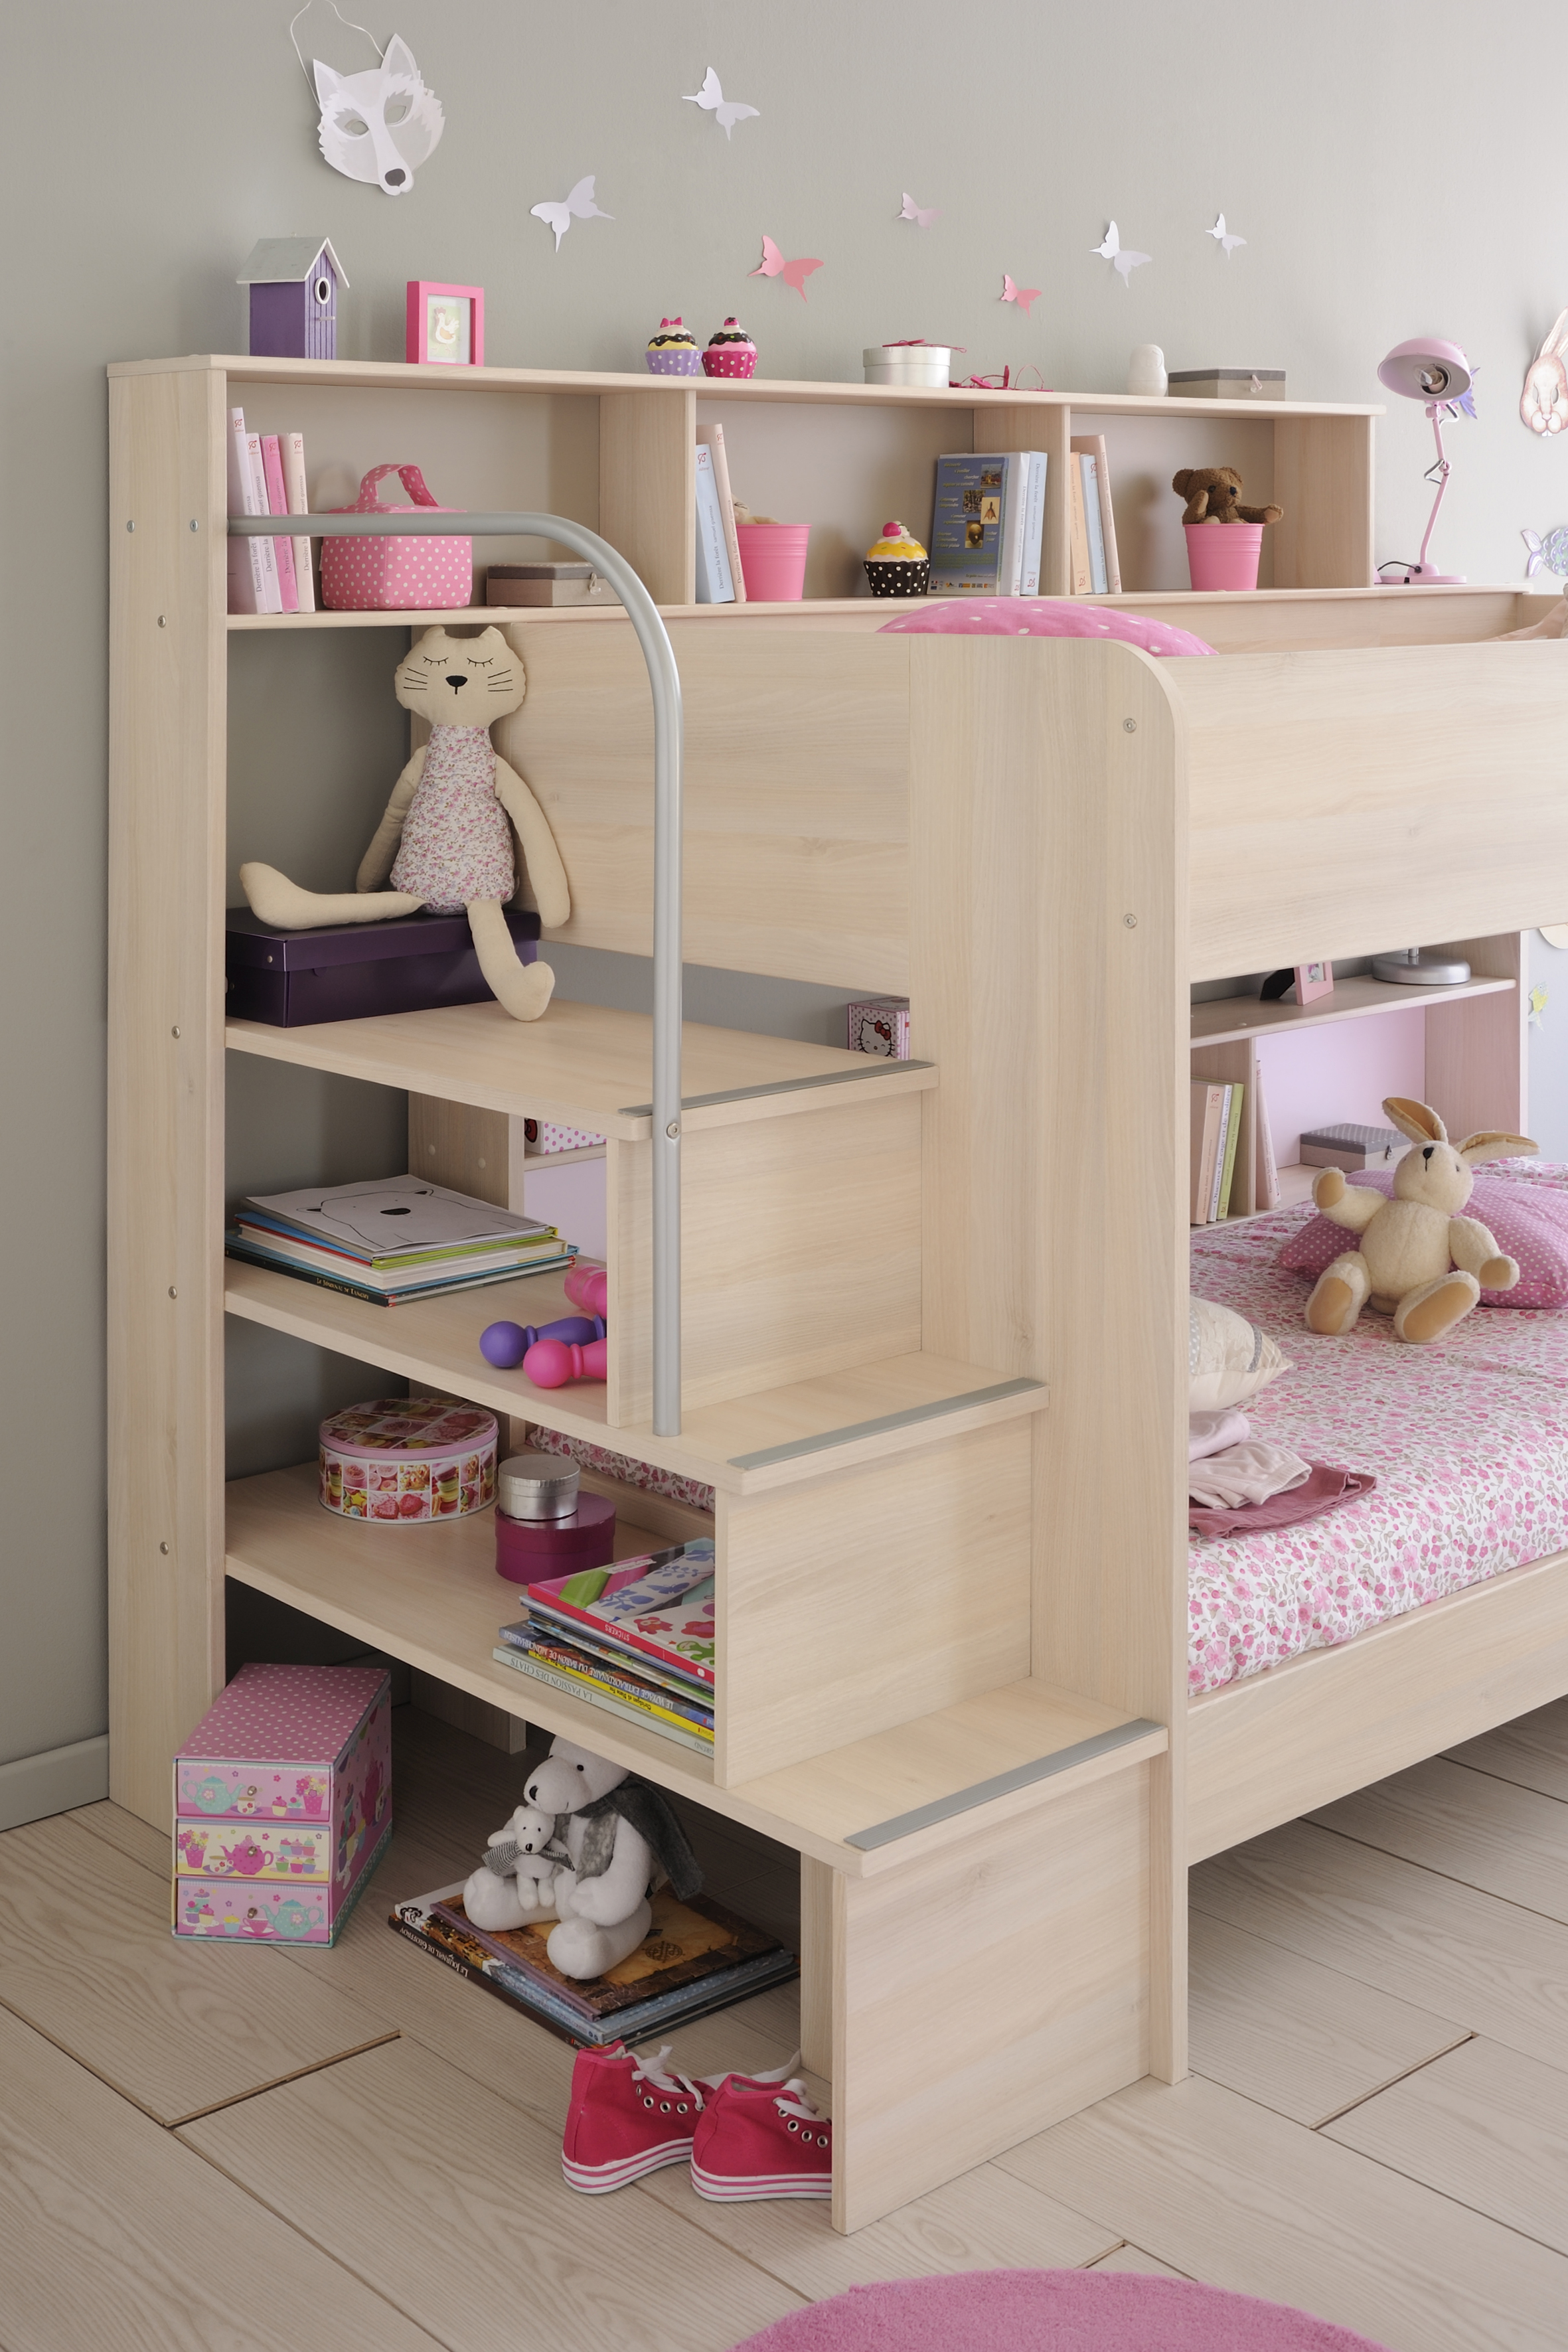 Parisot Bibop Bunk Bed In Acacia Rainbow Wood